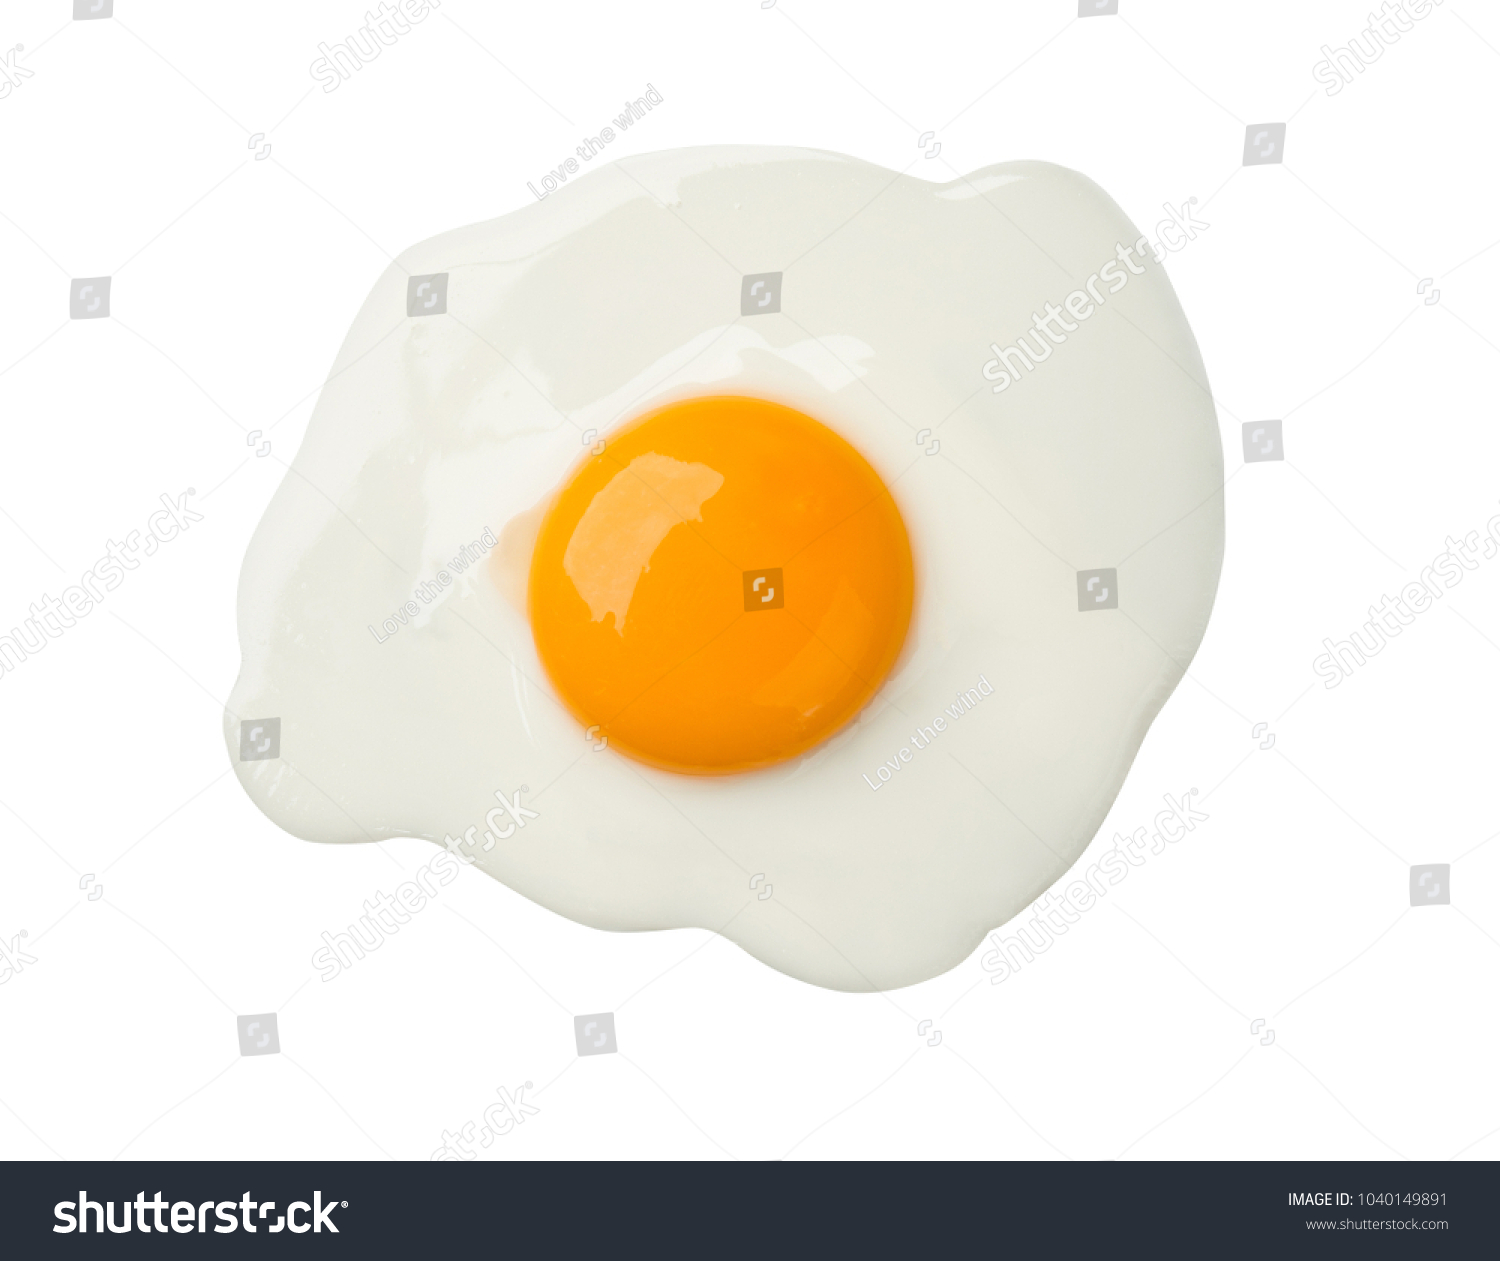 Fried egg isolated on white background on top view  food cooking photo object design